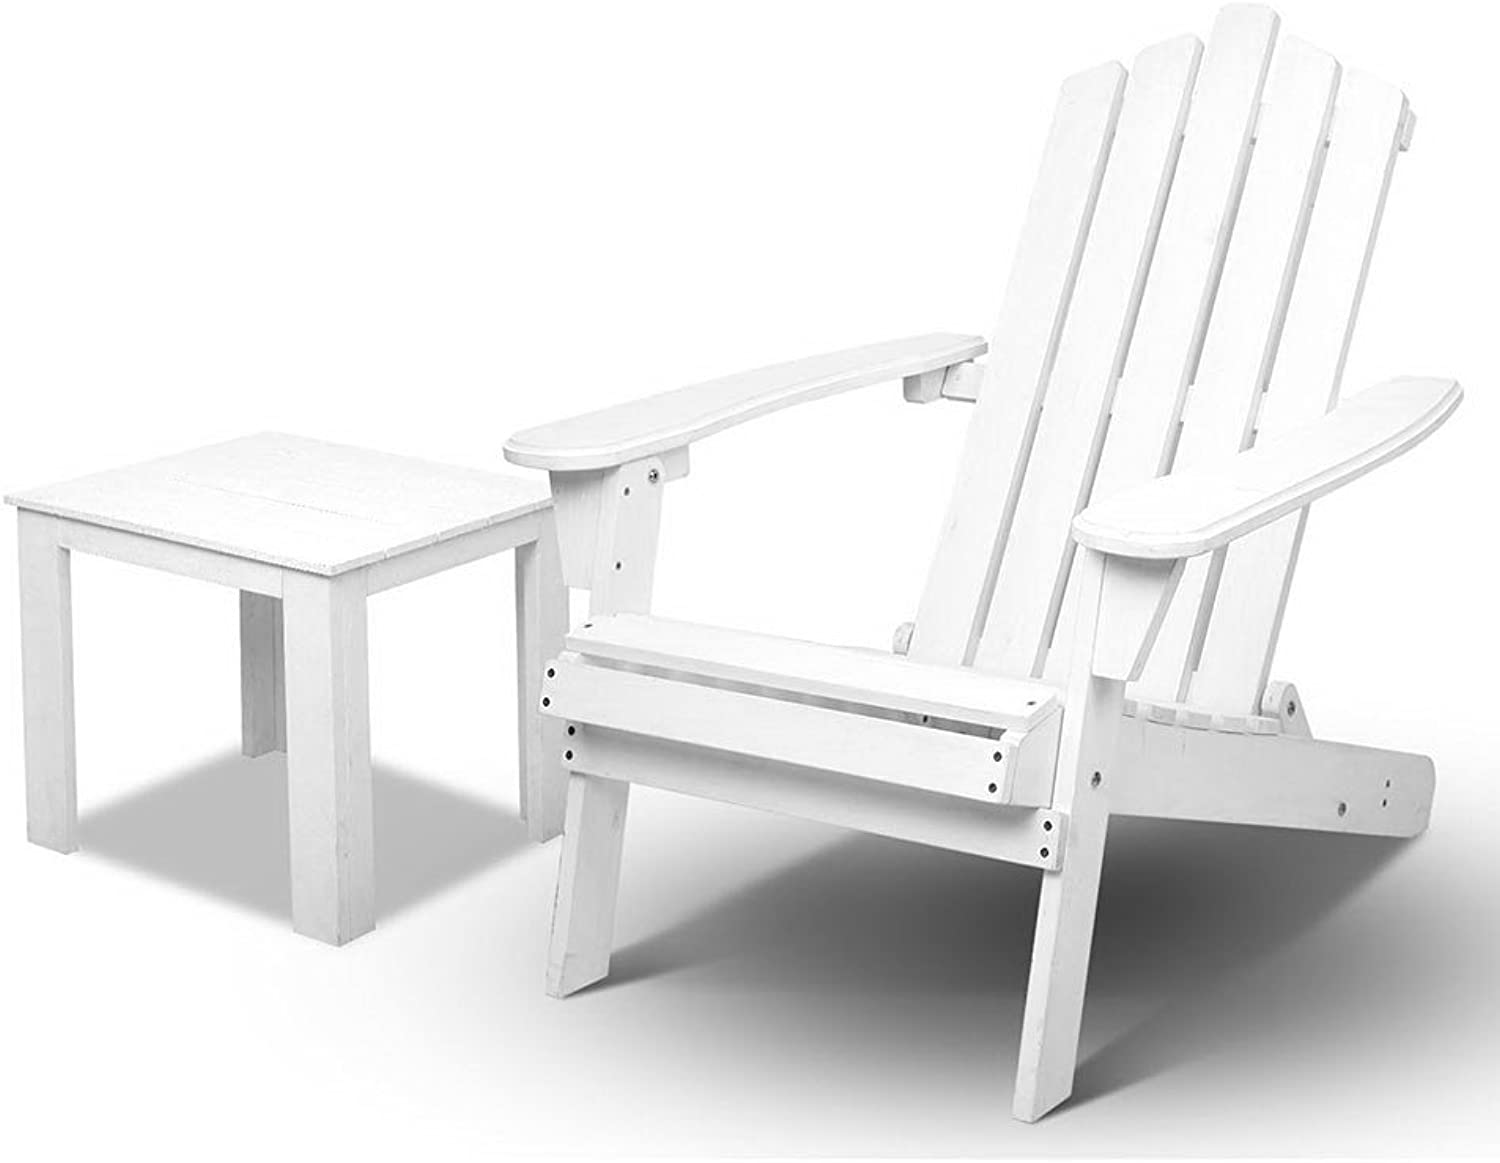 Gardeon 2PC Outdoor Chair Adirondack Foldable Chair with Wooden Table for Garden Beach Yard Patio